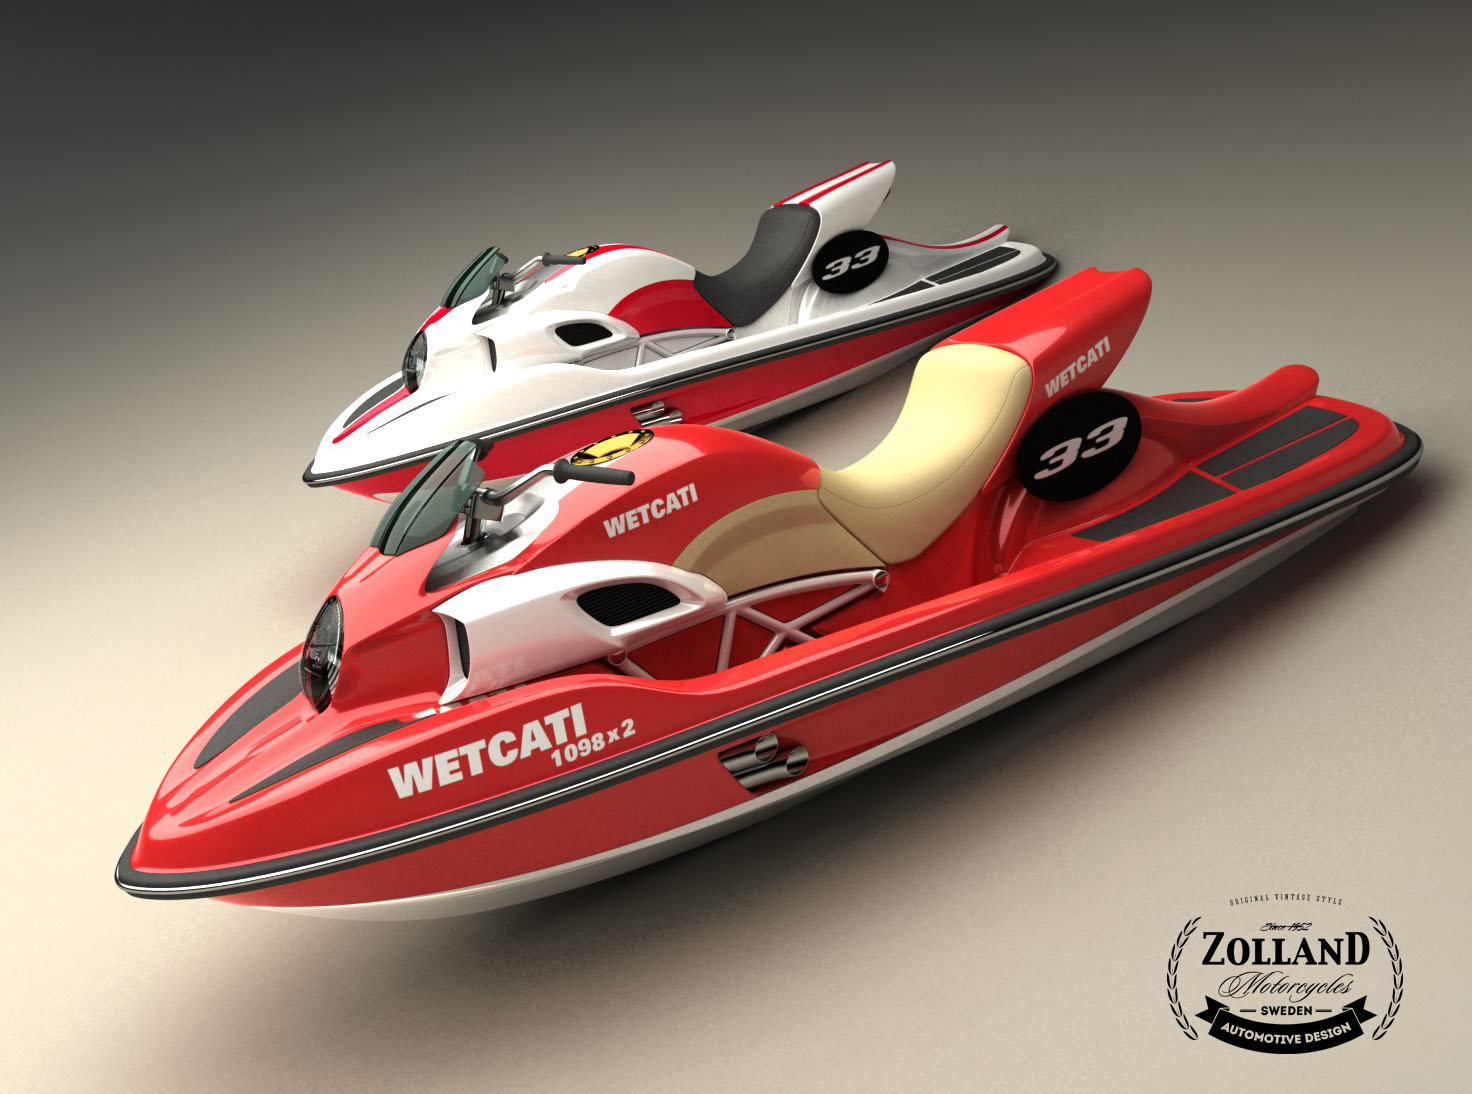 320HP Ducati-Inspired Jet Ski With Twin Ducati 1098 Engines | The Watercraft  Journal | the best resource for JetSki, WaveRunner, and SeaDoo enthusiasts  and ...